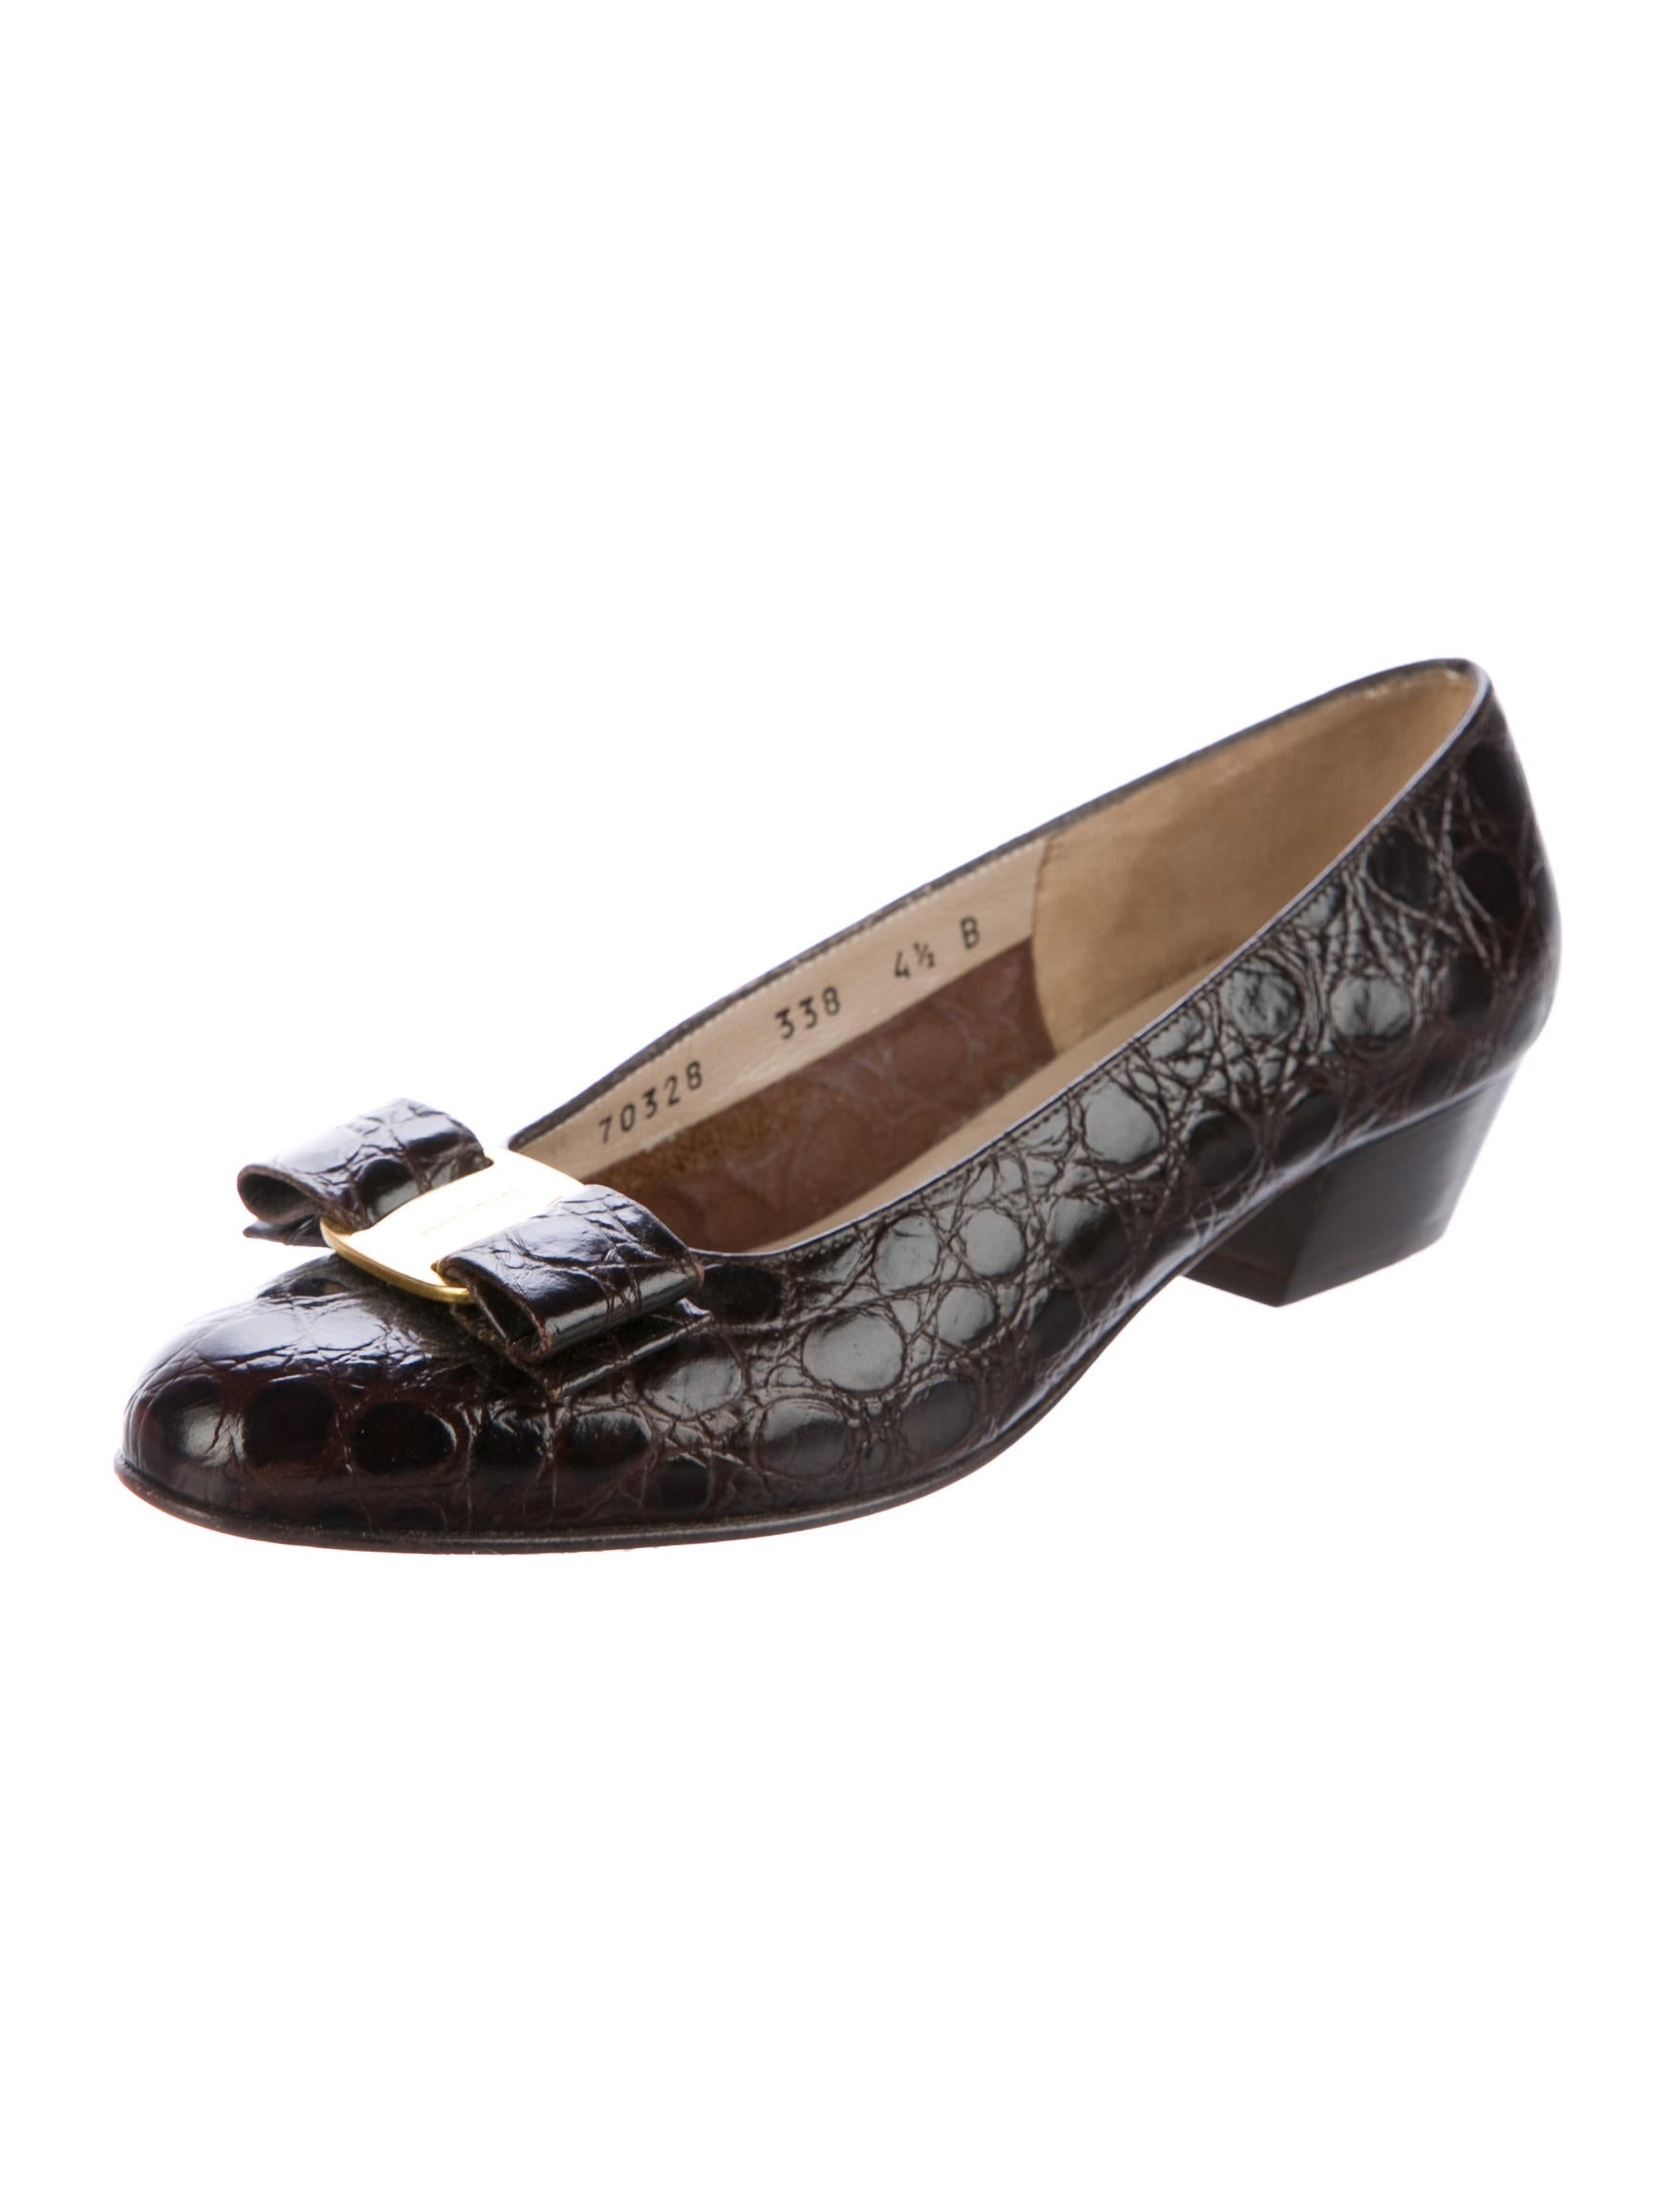 salvatore ferragamo vara embossed pumps shoes sal53146 the realreal. Black Bedroom Furniture Sets. Home Design Ideas